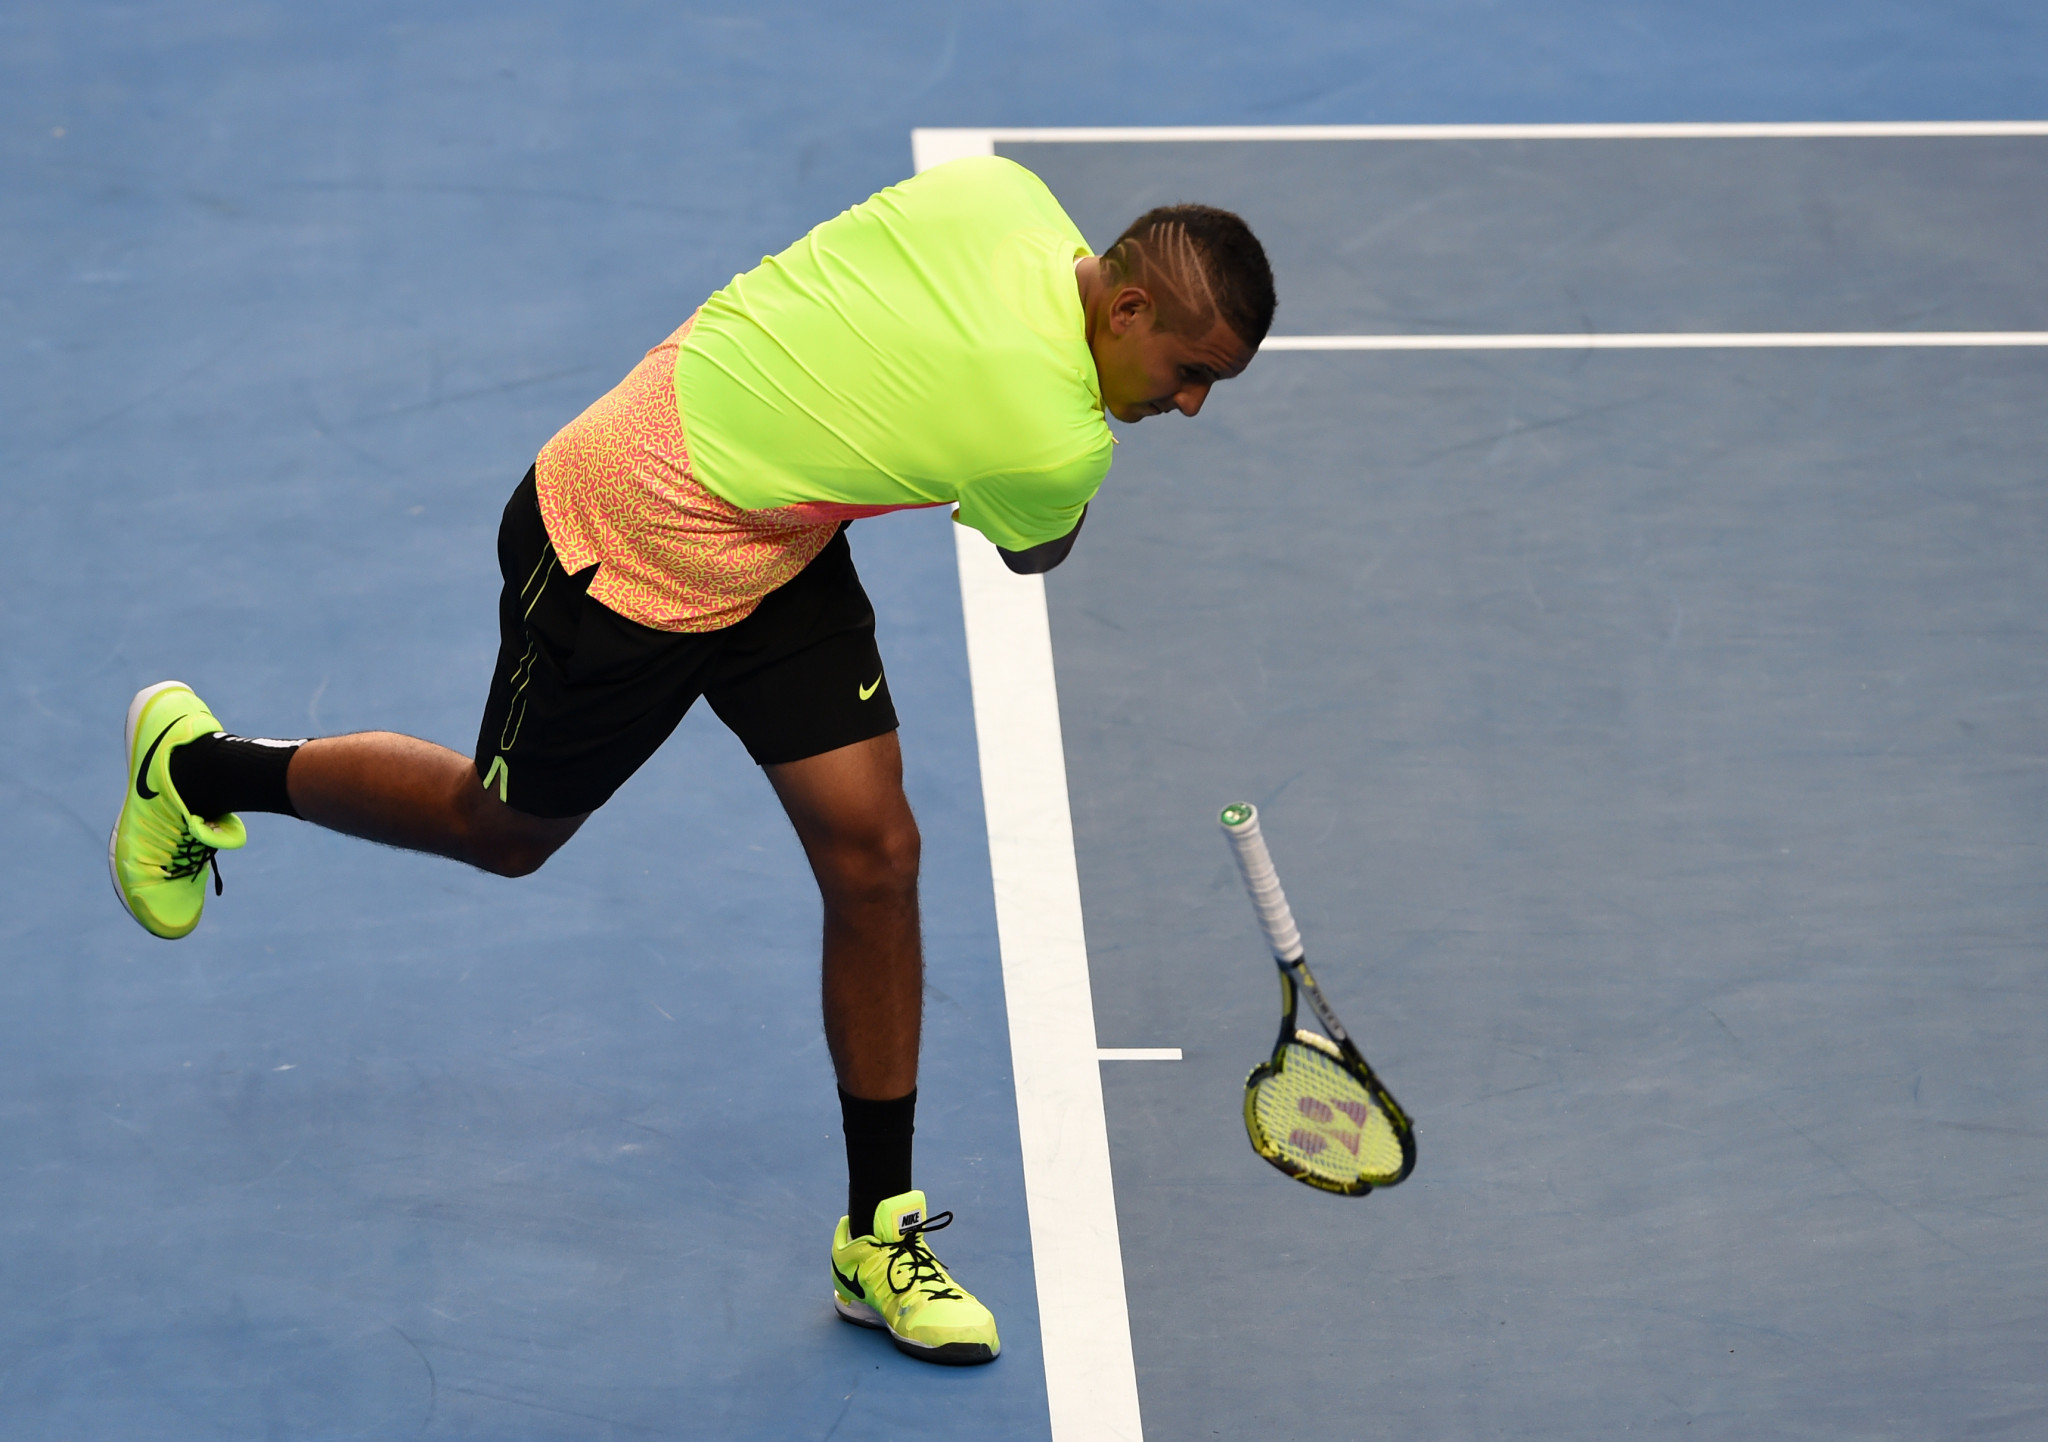 Nick Kyrgios has caused controversy during his career, leading to a row with the AOC which saw the player withdraw from the Rio 2016 Olympics ©Getty Images